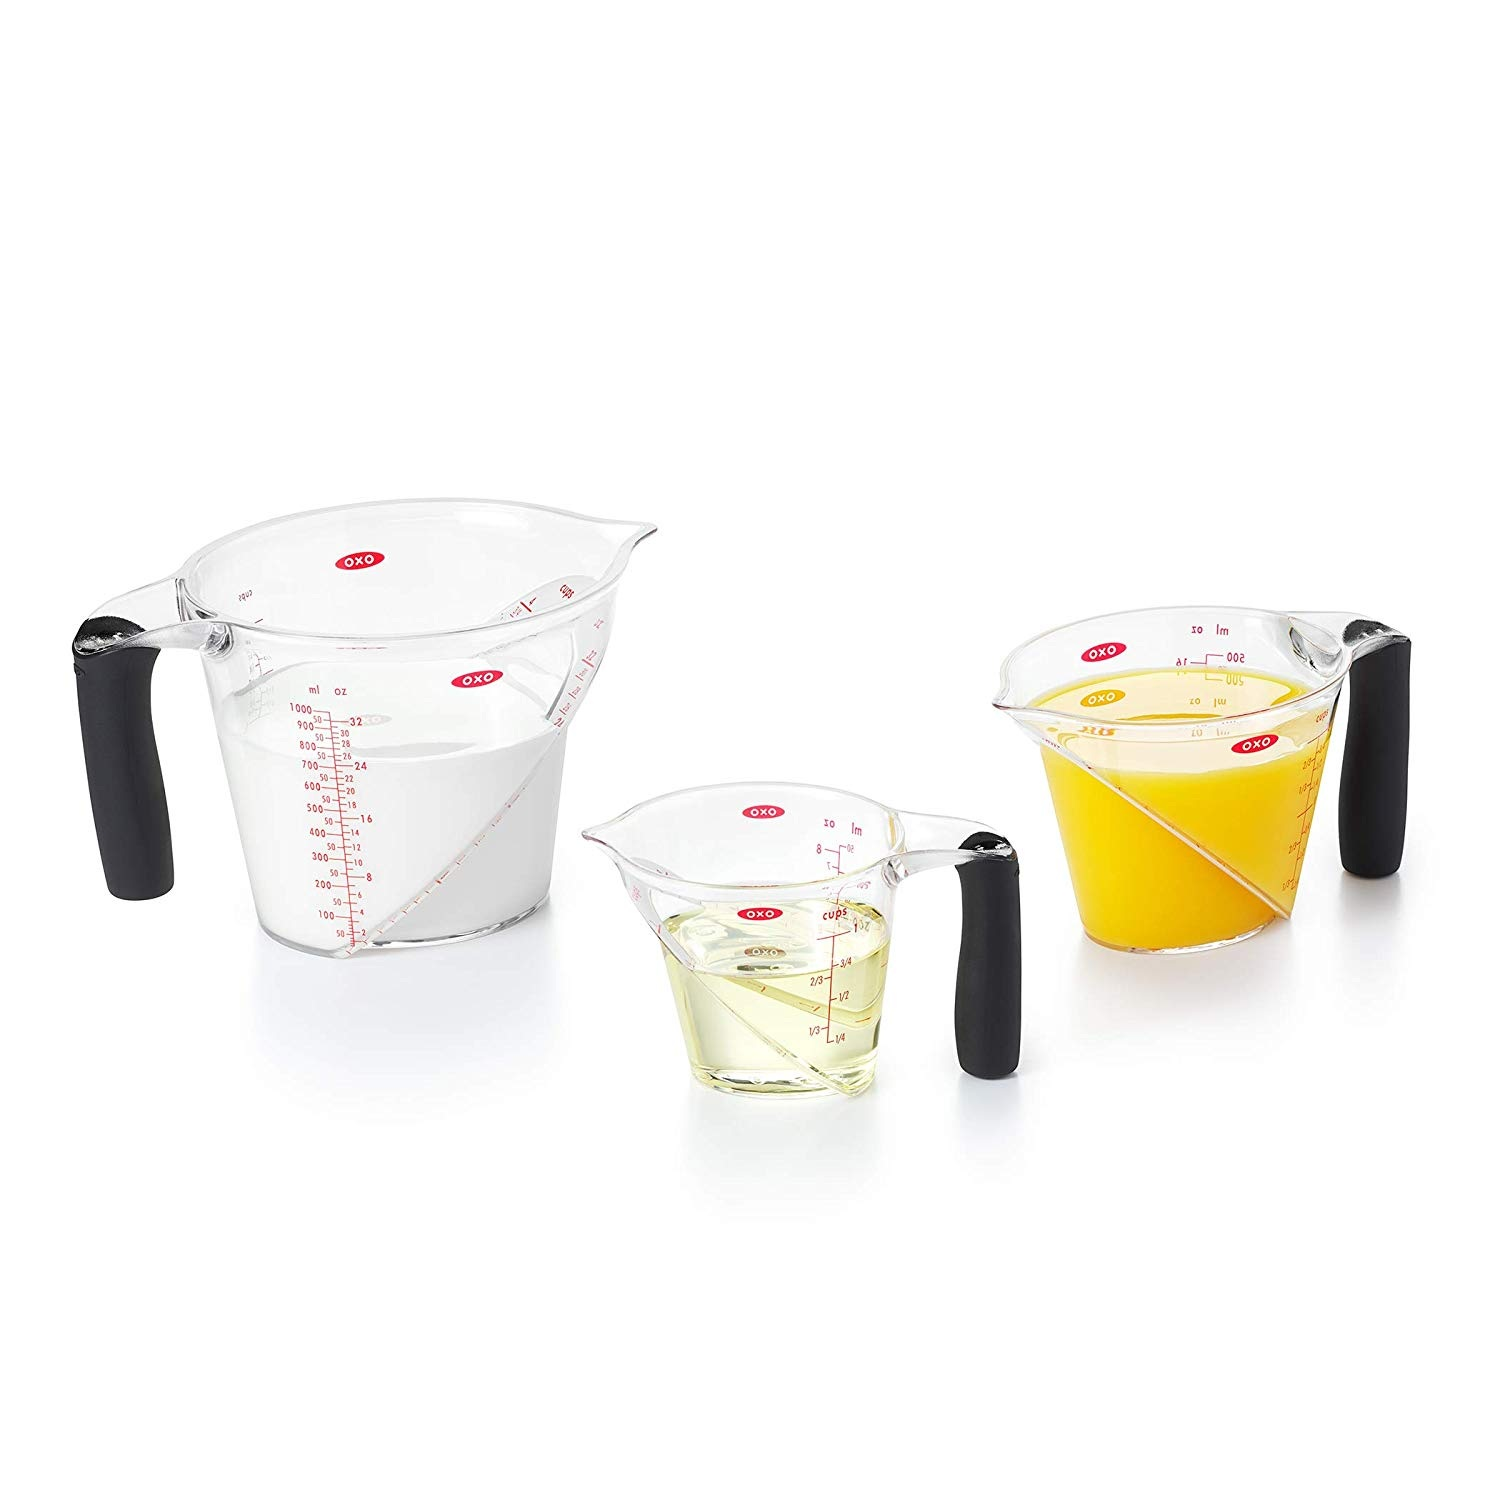 liquid measuring cups - OXO$19.95The best liquid measuring cups of all time.